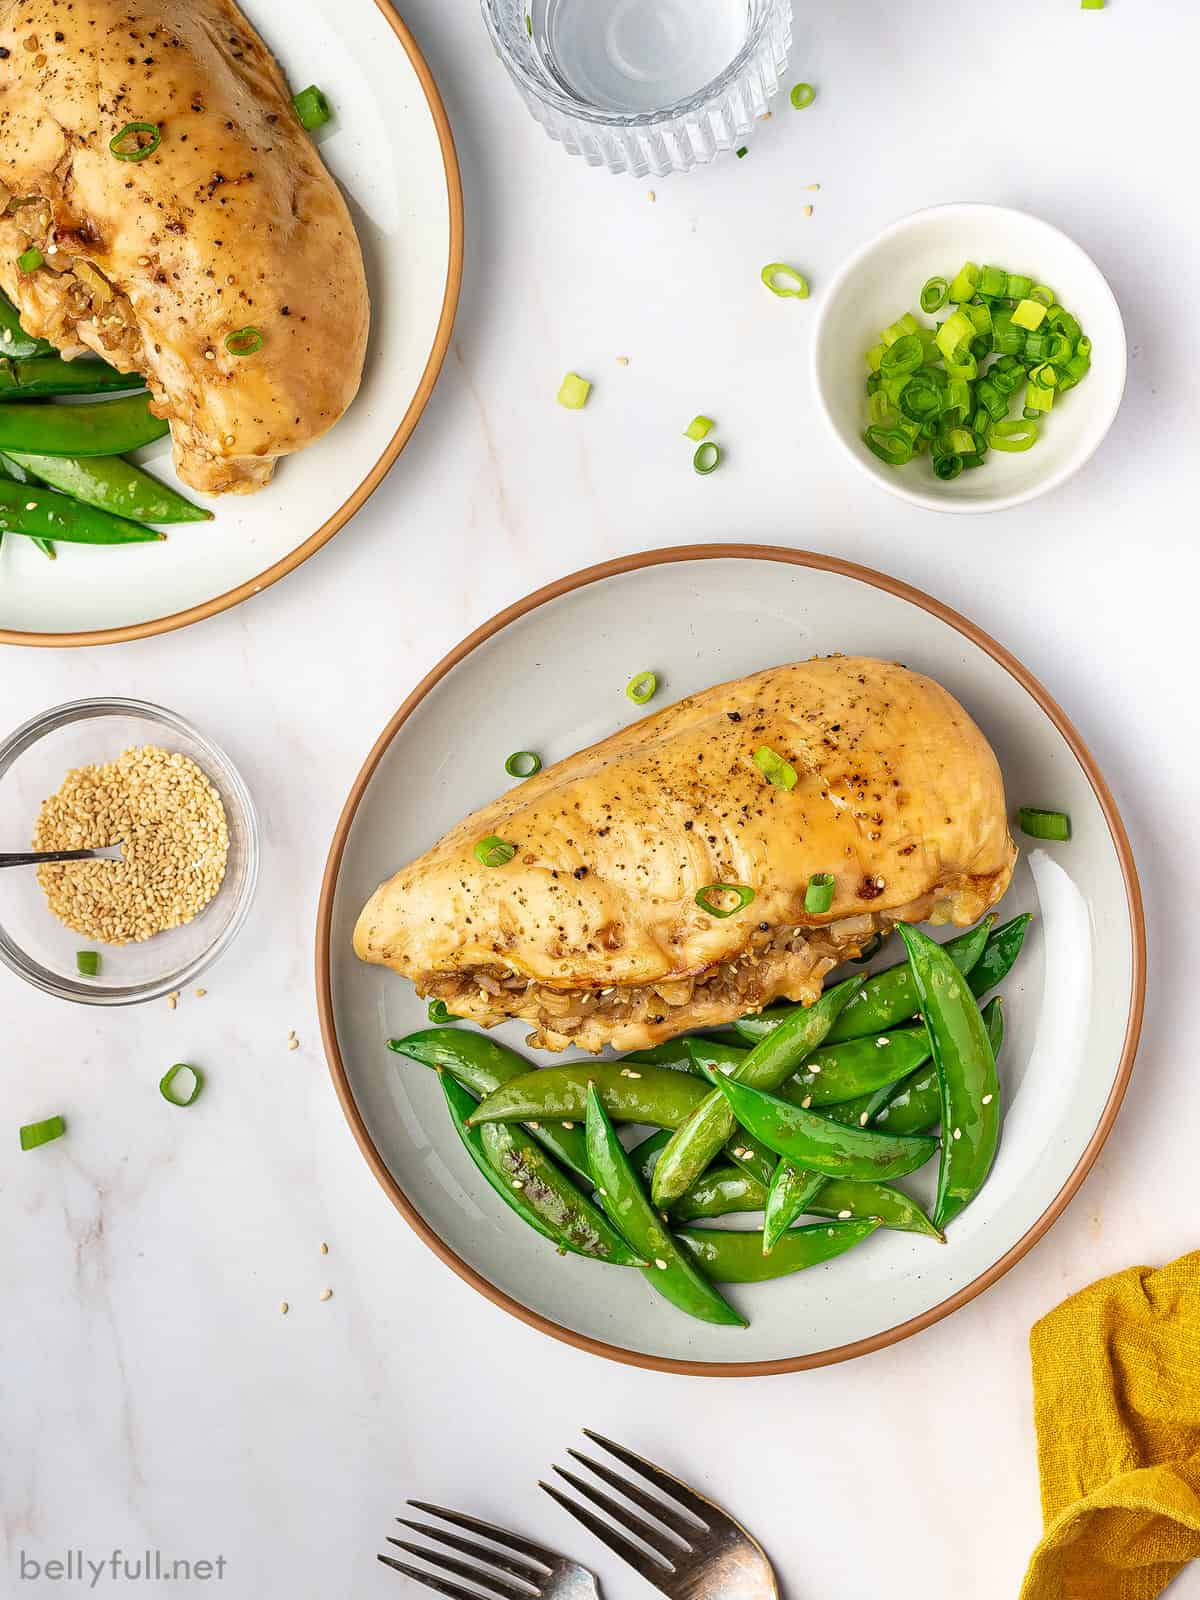 Overhead view of a stuffed chicken breast on a plate with green beans